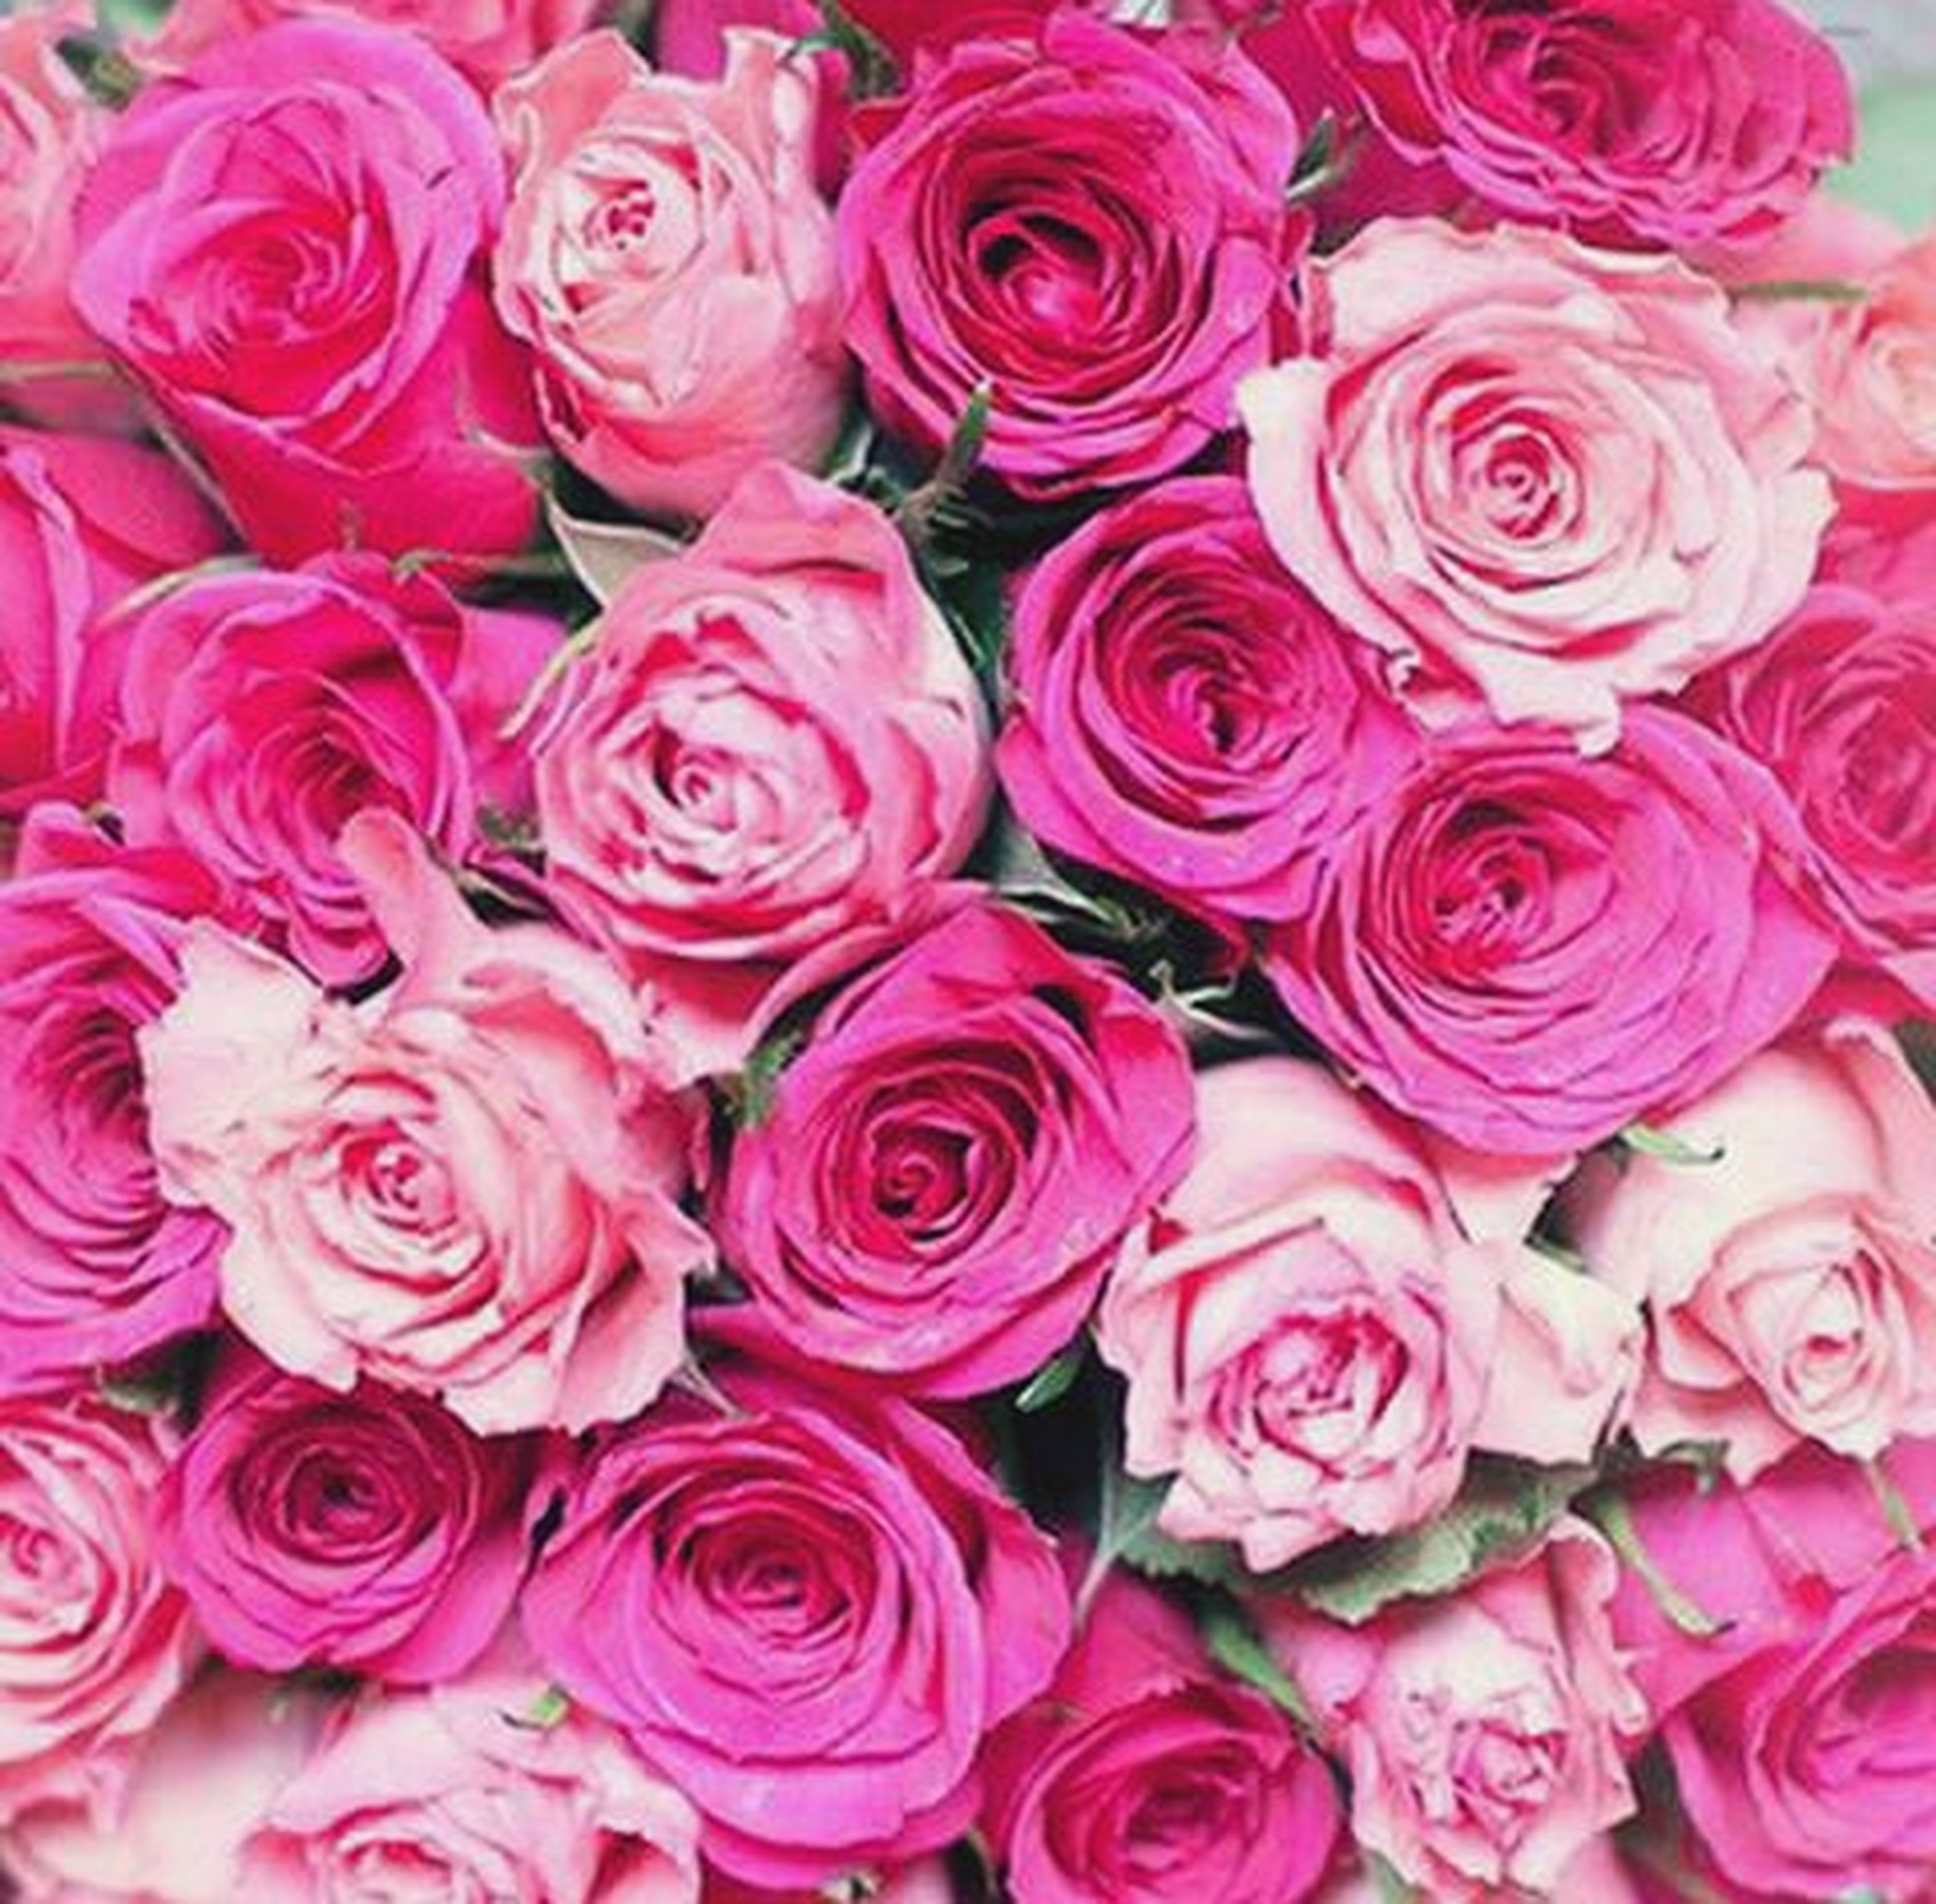 flower, freshness, petal, fragility, full frame, beauty in nature, flower head, backgrounds, rose - flower, growth, nature, pink color, abundance, rose, blooming, close-up, bunch of flowers, red, high angle view, plant